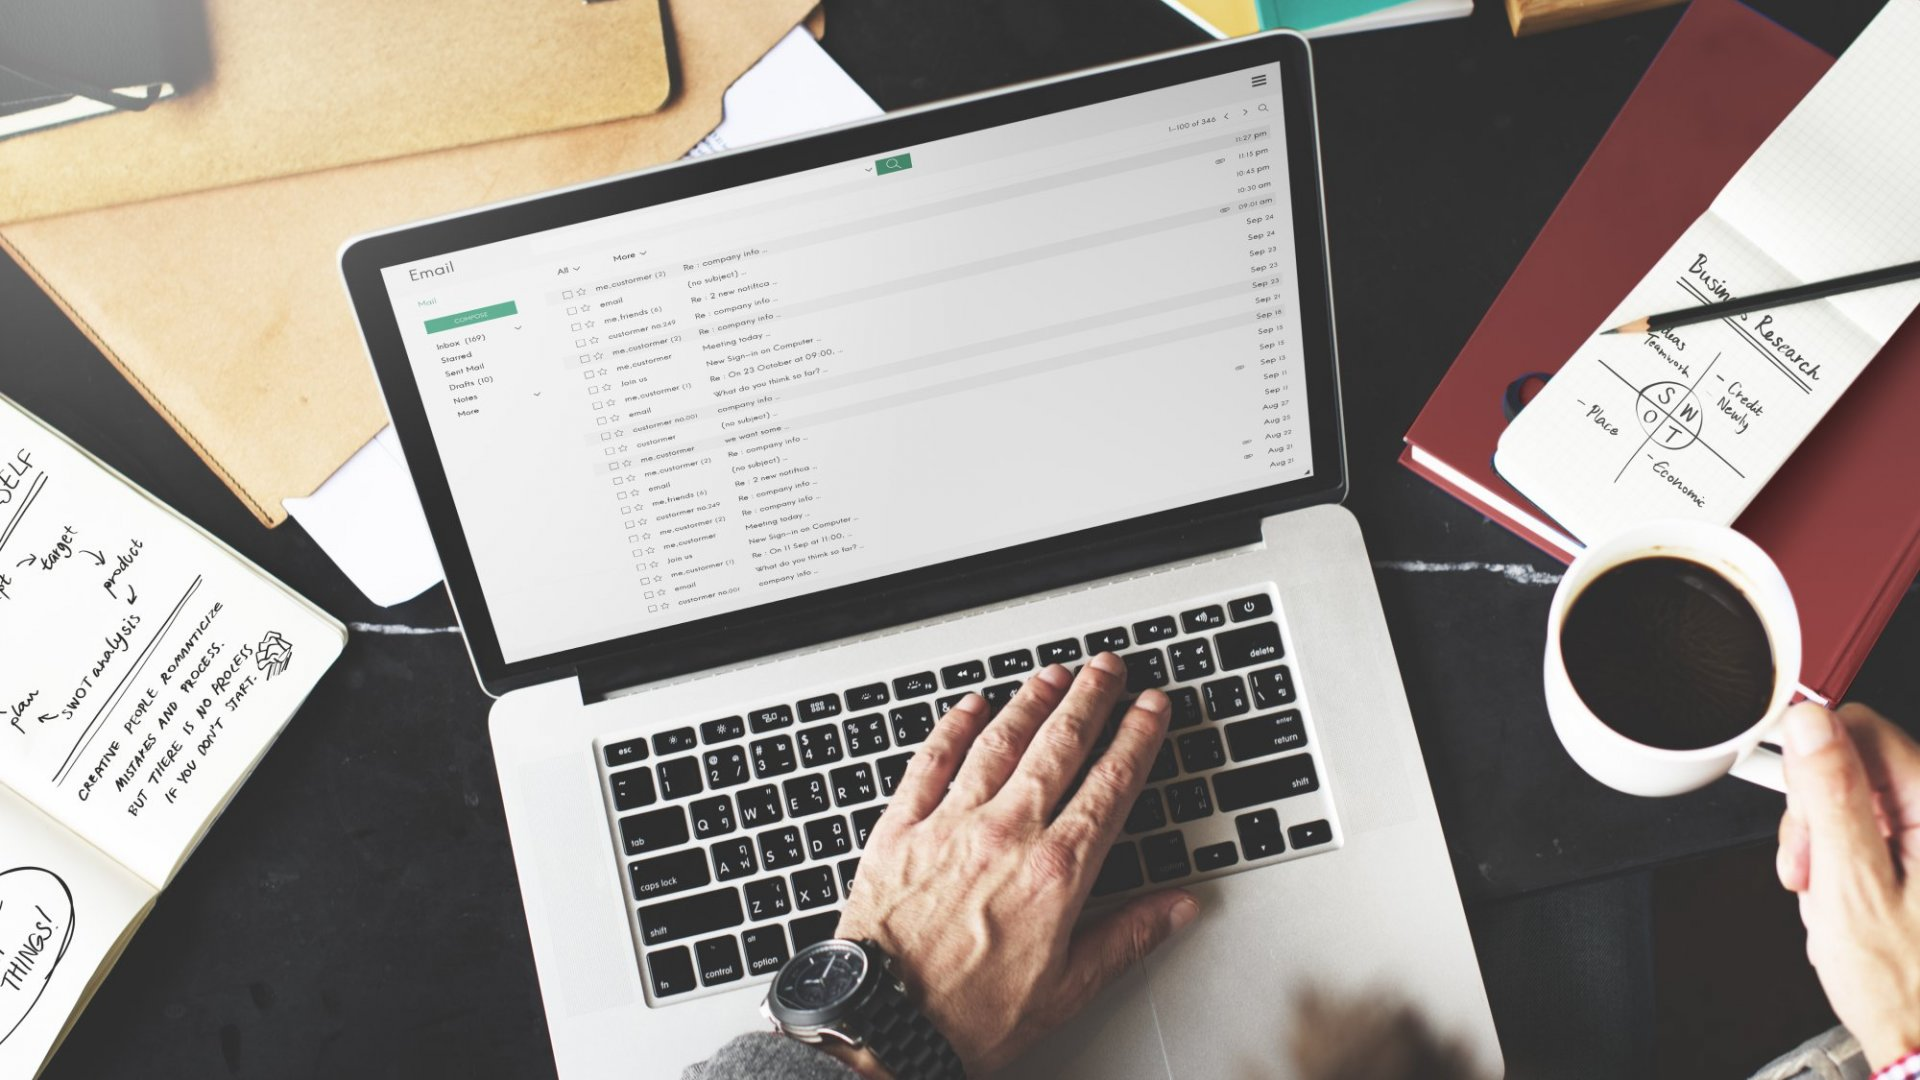 5 Email Etiquette Rules Even Smart People Get Wrong